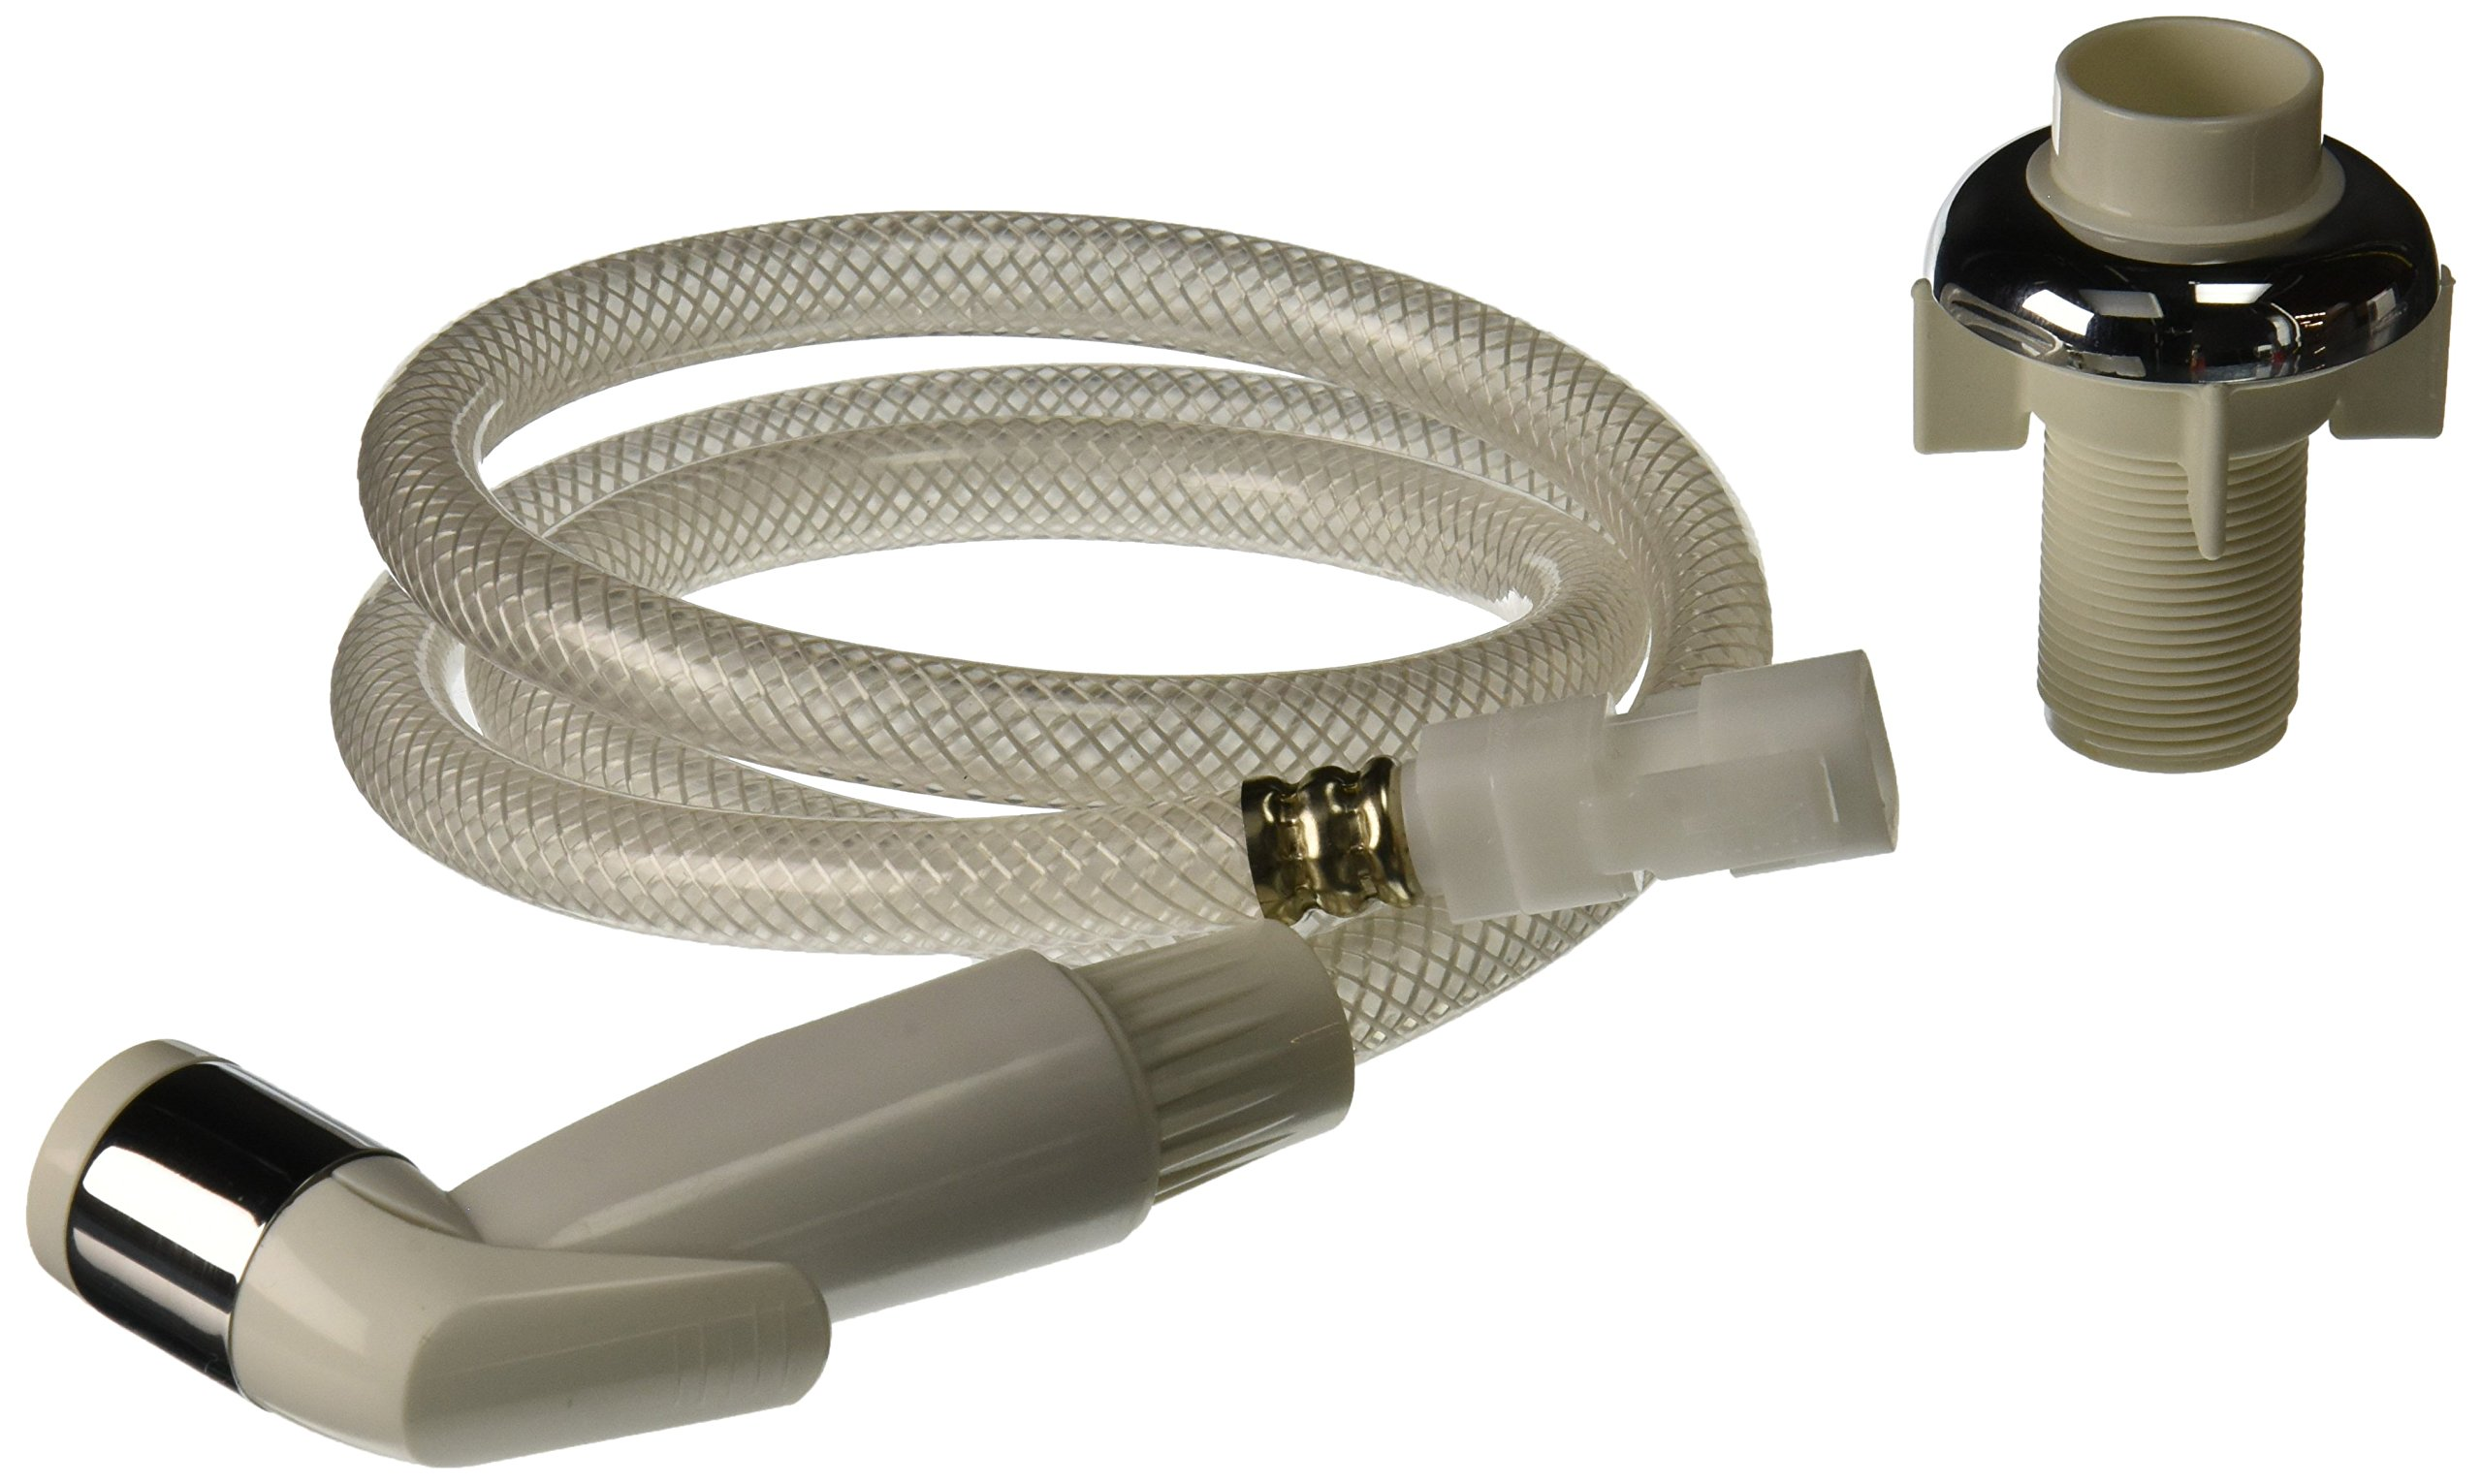 Peerless RP54805WH Spray, Hose Assembly and Spray Support, White